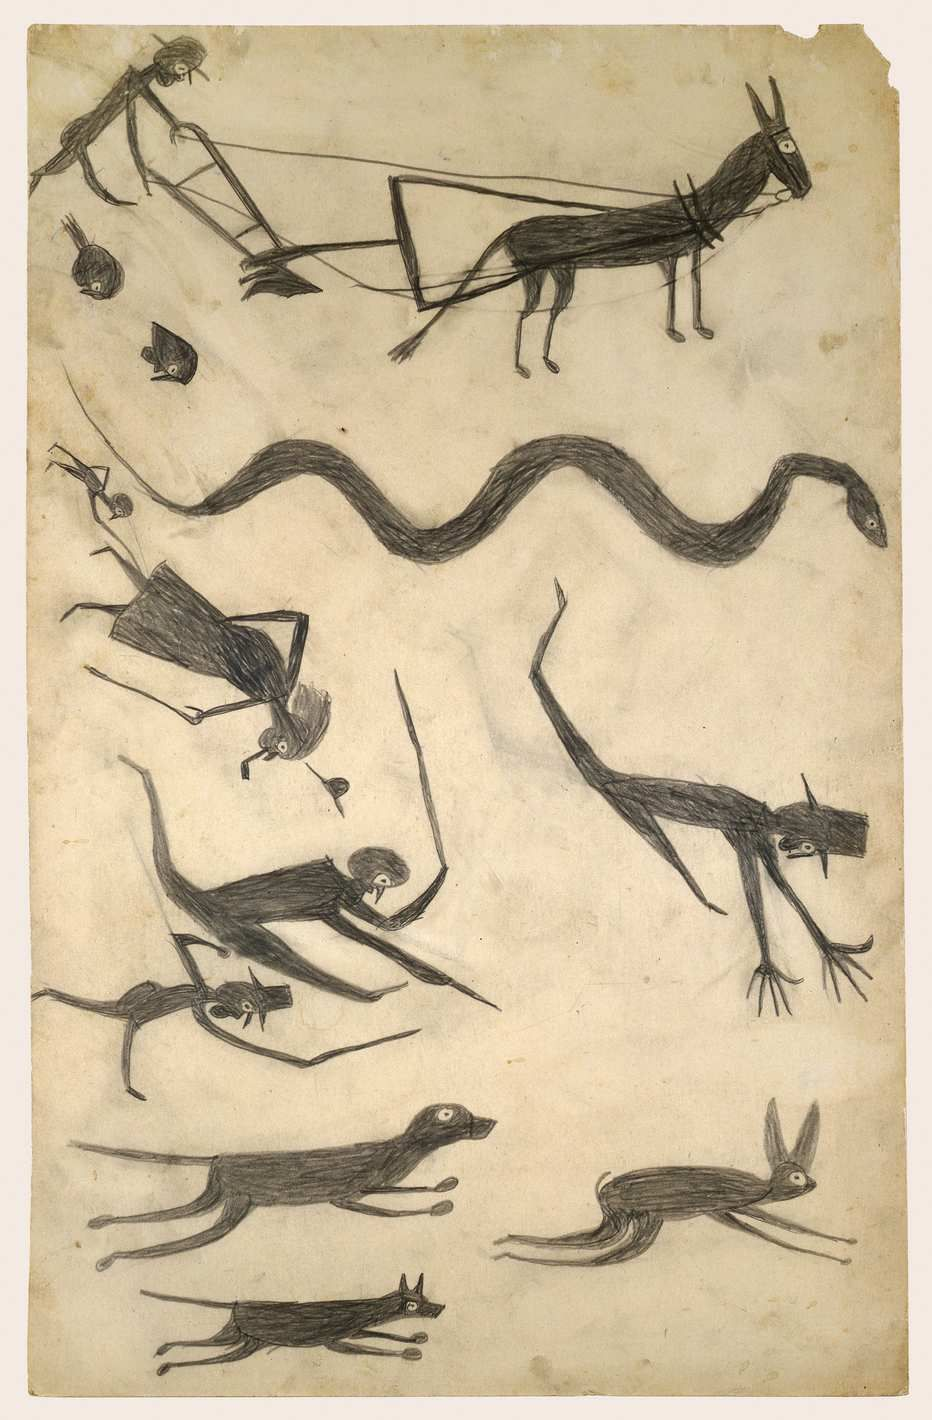 Bill Traylor Deserves to Be Exalted Alongside Art'